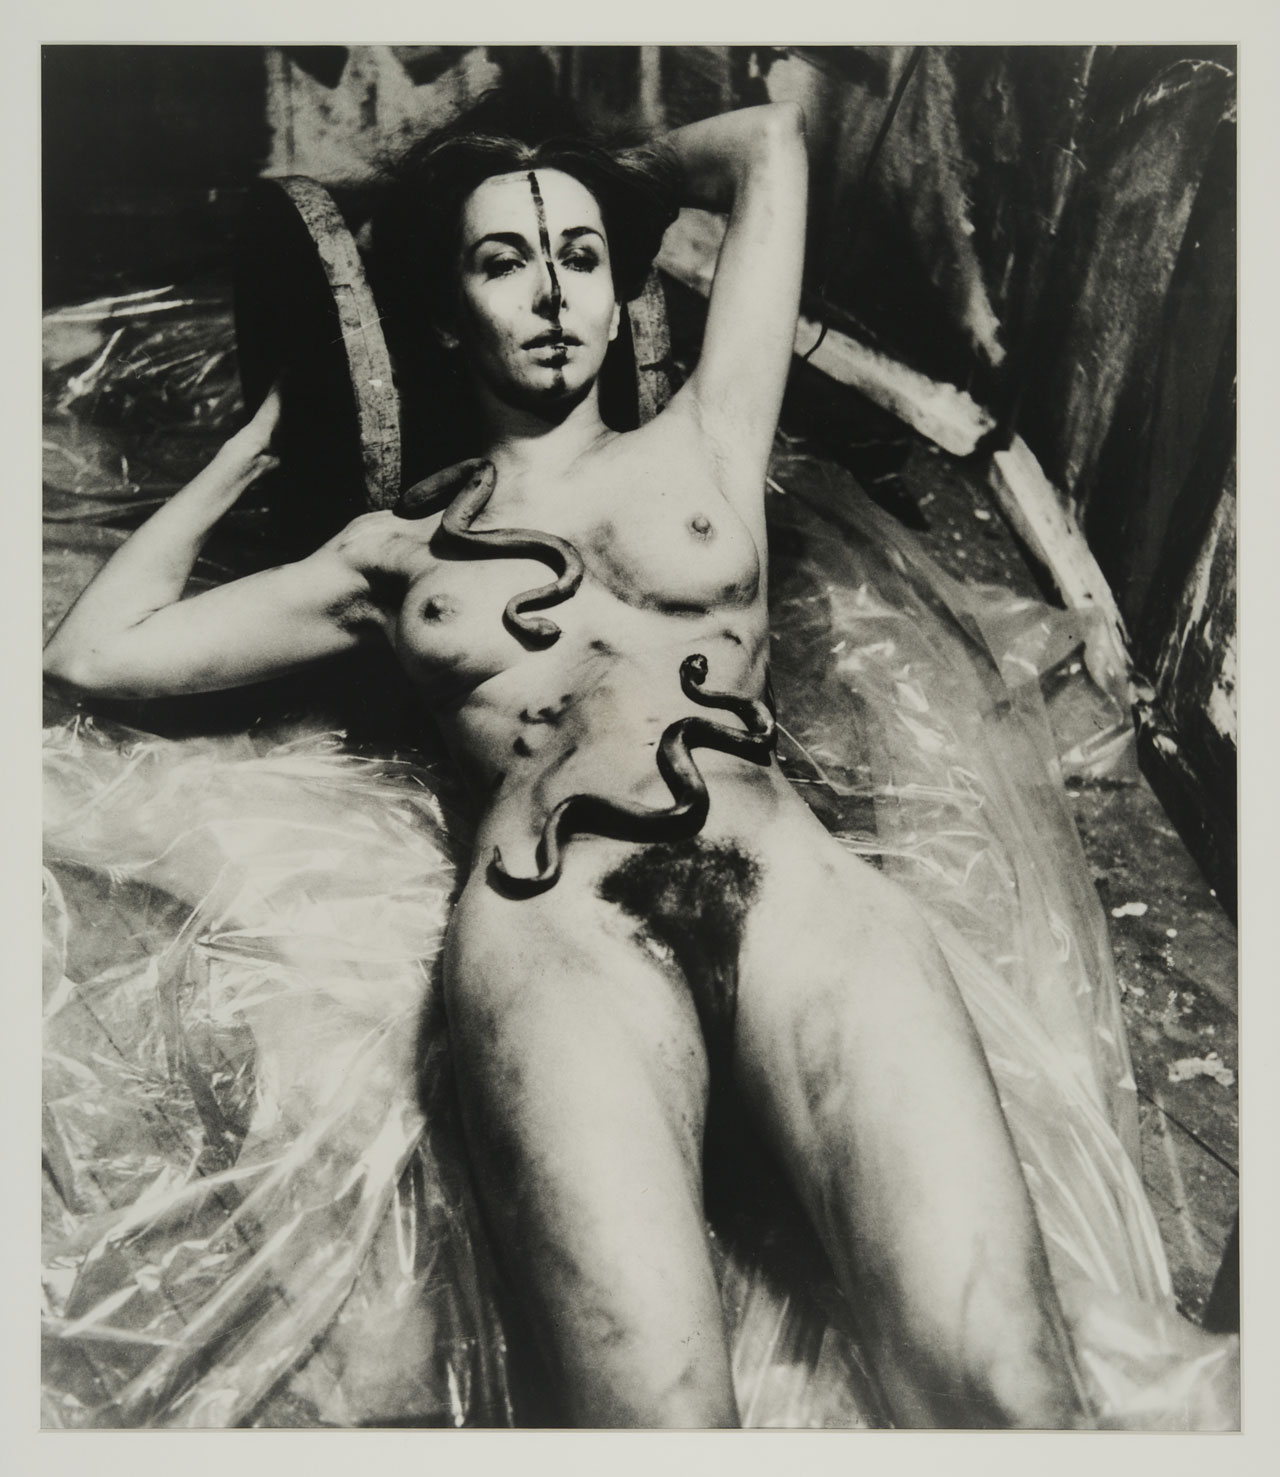 Carolee Schneemann, Eye Body: 36 Transformative Actions for Camera, 1963. Courtesy: Carolee Schneemann, Erró (*1932) VG Bild-Kunst, Bonn 2017